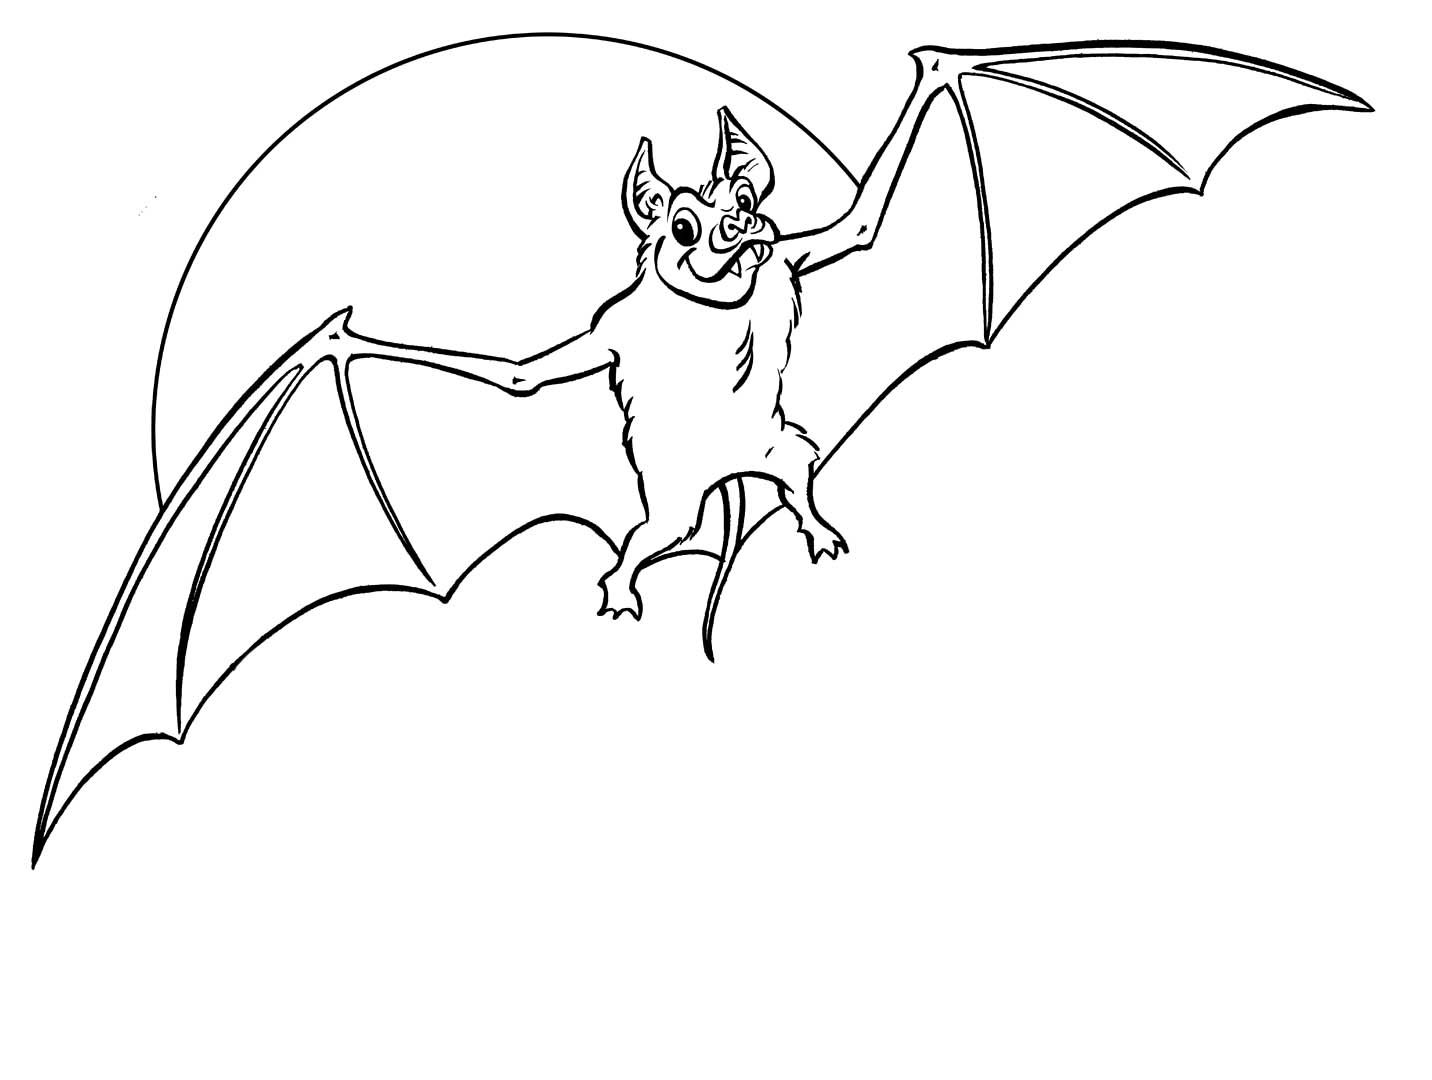 Halloween Bat Coloring Pages | Bats | Pinterest